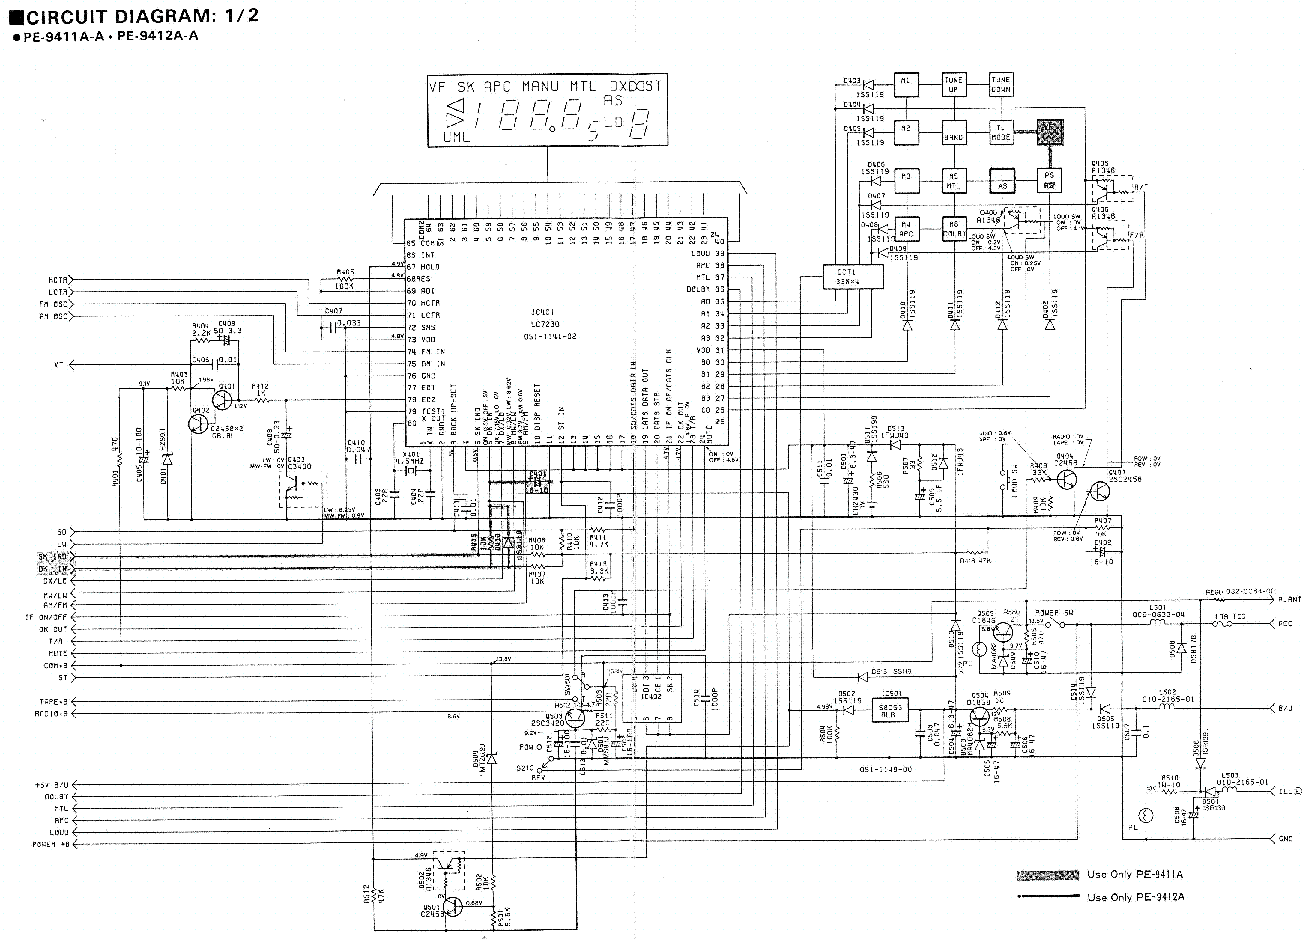 Deh P6100bt Wiring Harness also Pioneer Deh X3500ui Wiring Diagram further Avital 4103 Wiring Diagram together with Deh 6300ub Wiring Diagram moreover Wiring Diagram Pioneer Deh P4200ub. on pioneer deh p4200ub wiring diagram